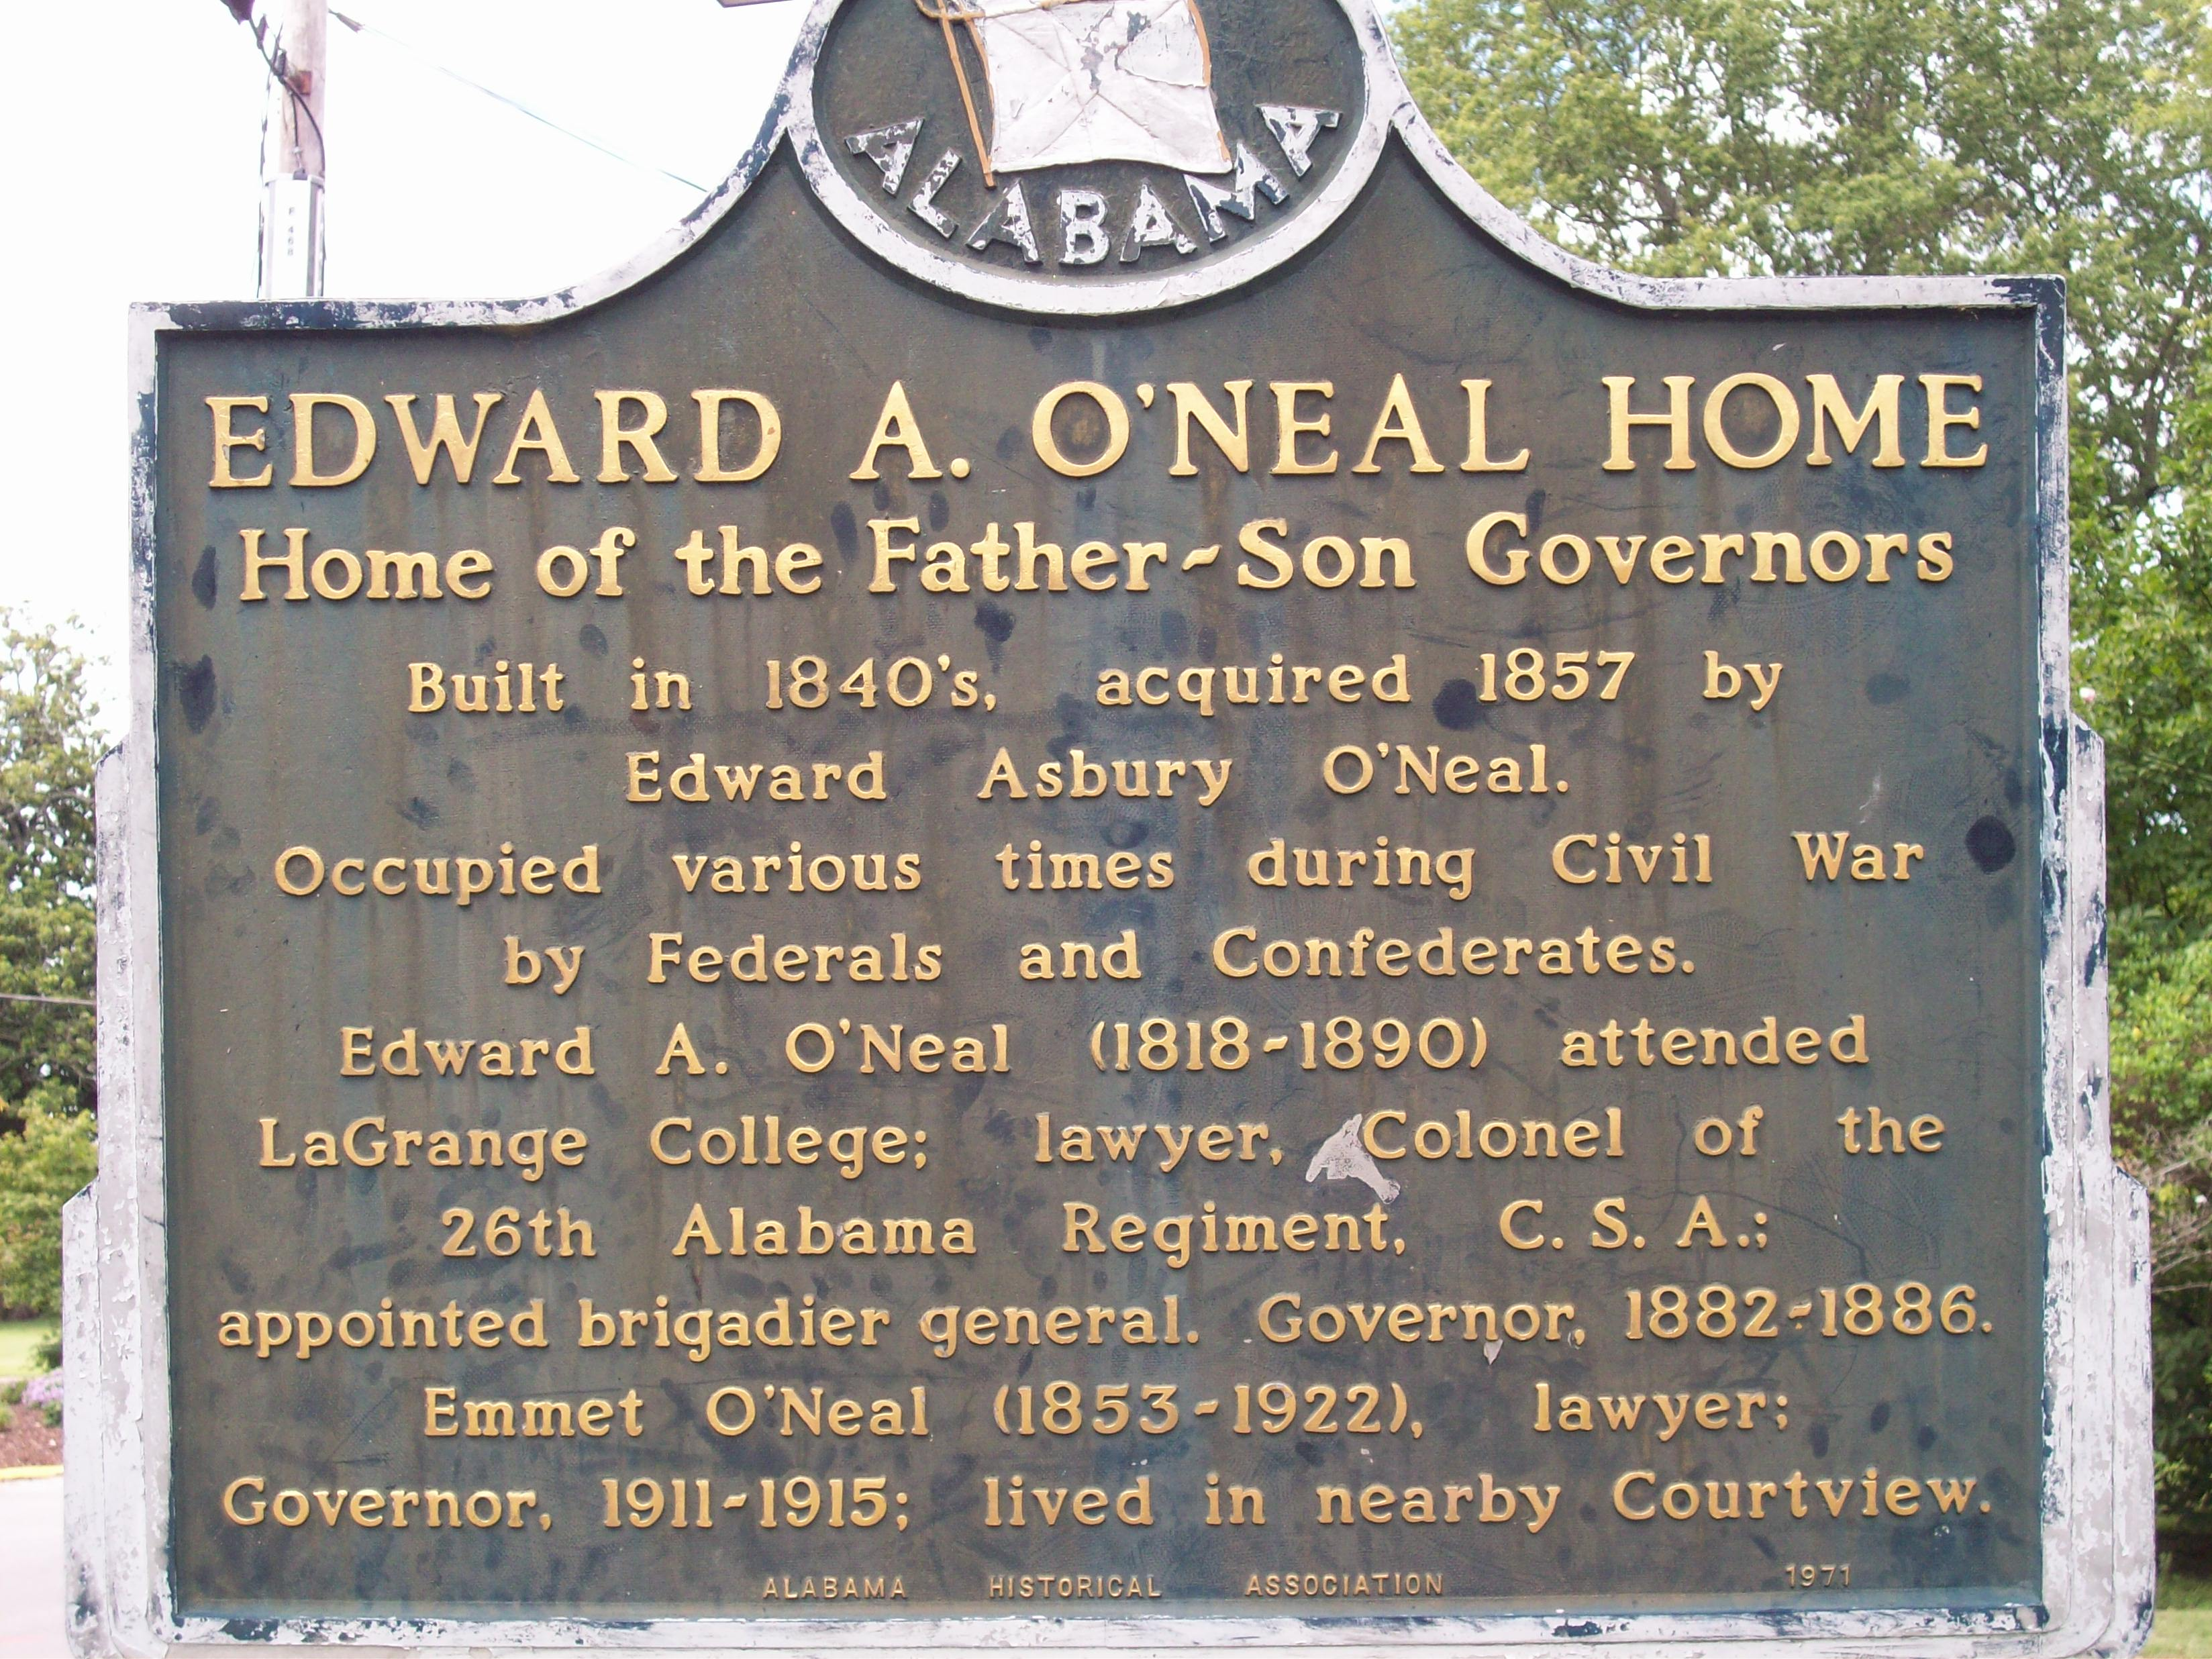 Edward A. O'Neal Home